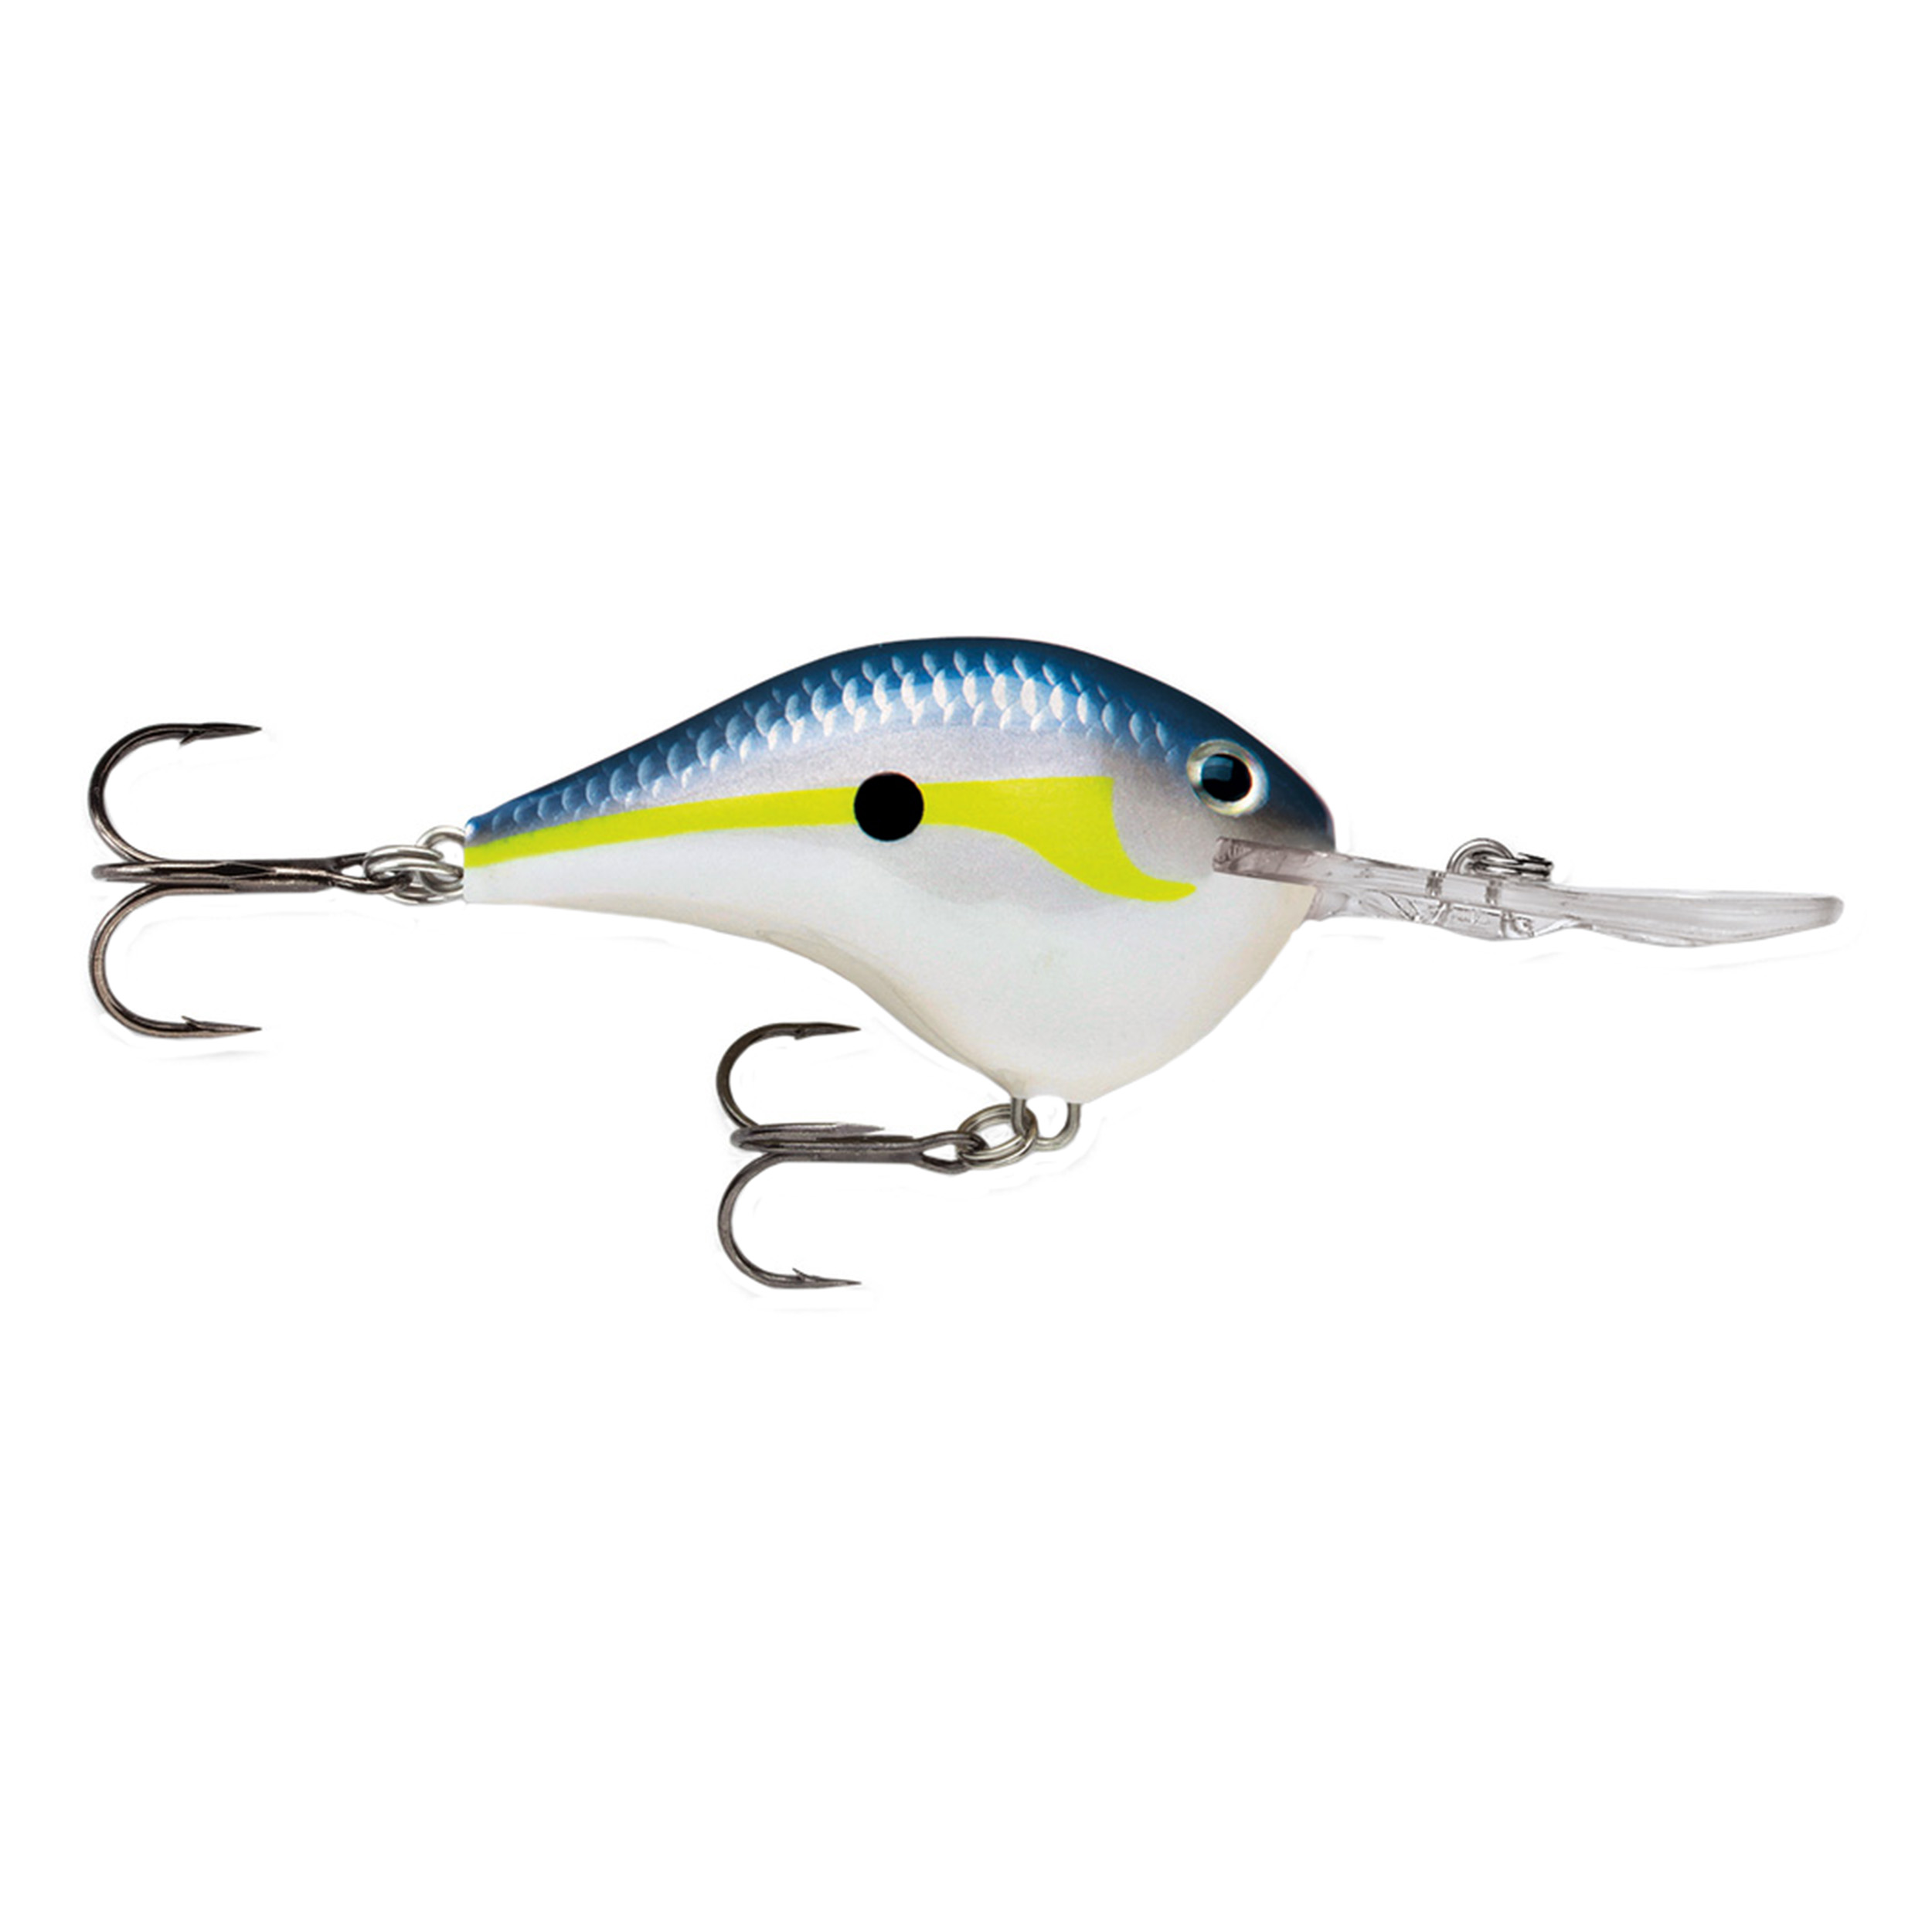 "Rapala Dives-To Series Custom Ink Lure Size 04, 2"" Length, 4' Depth, 2 Number 6 Treble Hooks, Helsinki Shad, Per 1 by Rapala"